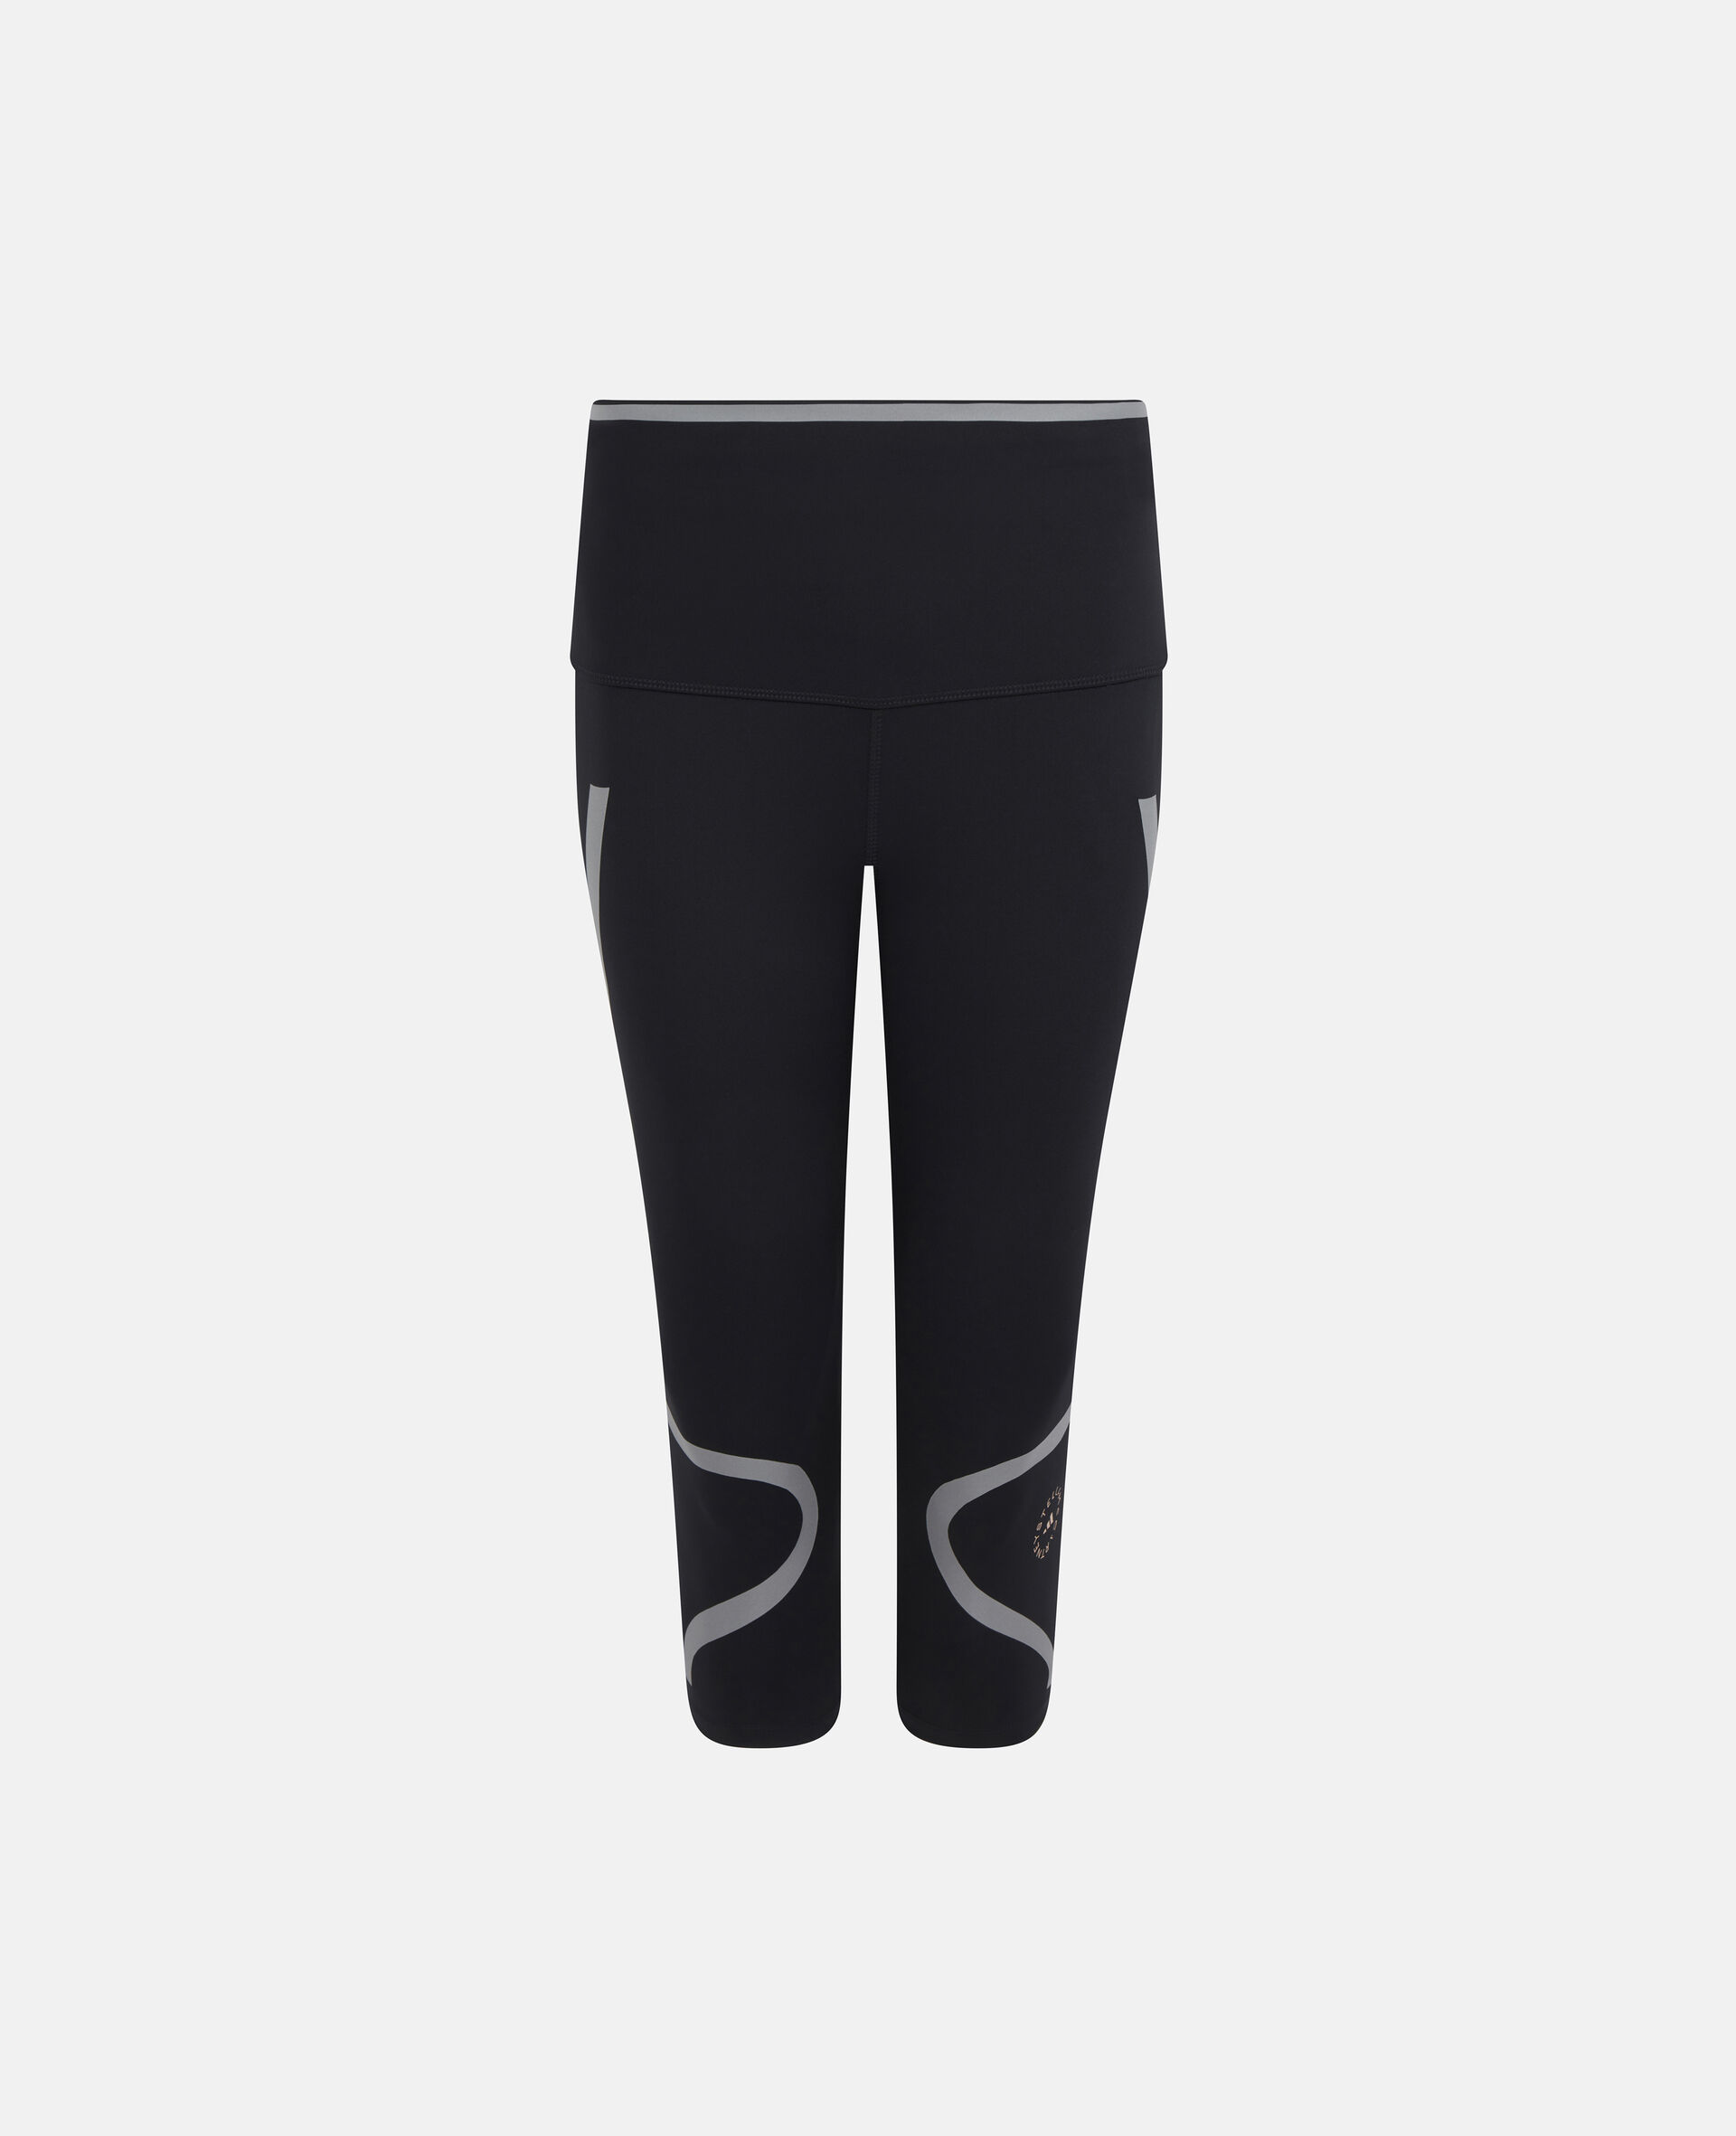 TruePace 3/4 Running Tights-Black-large image number 0